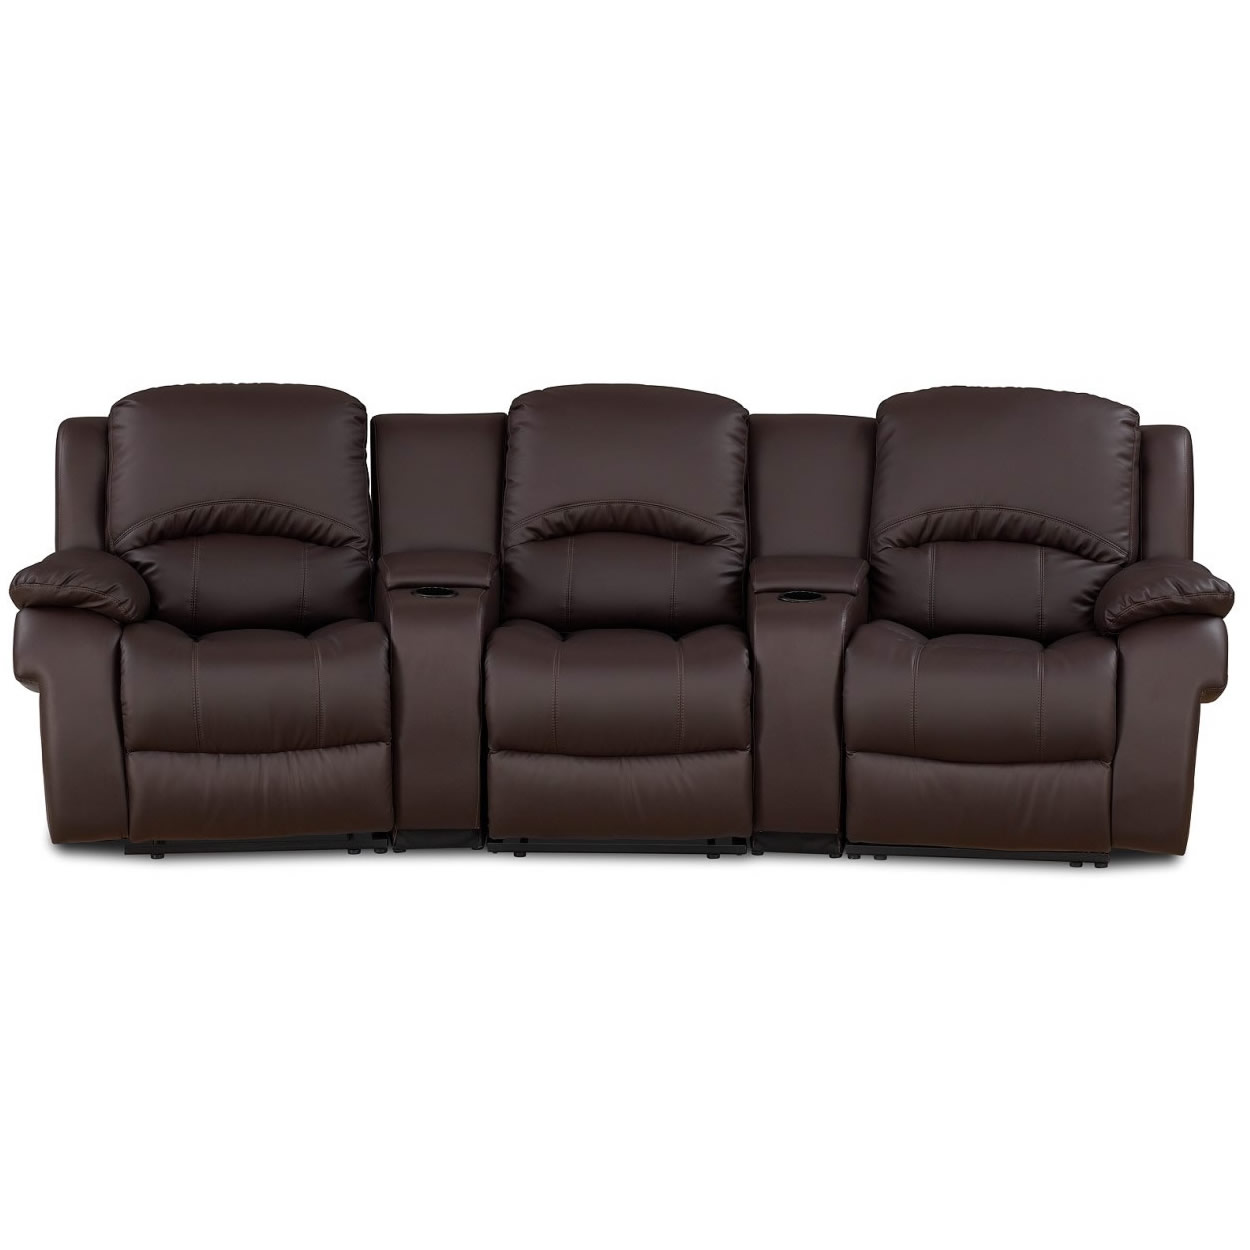 leather sectional sofa bed recliner photo - 1